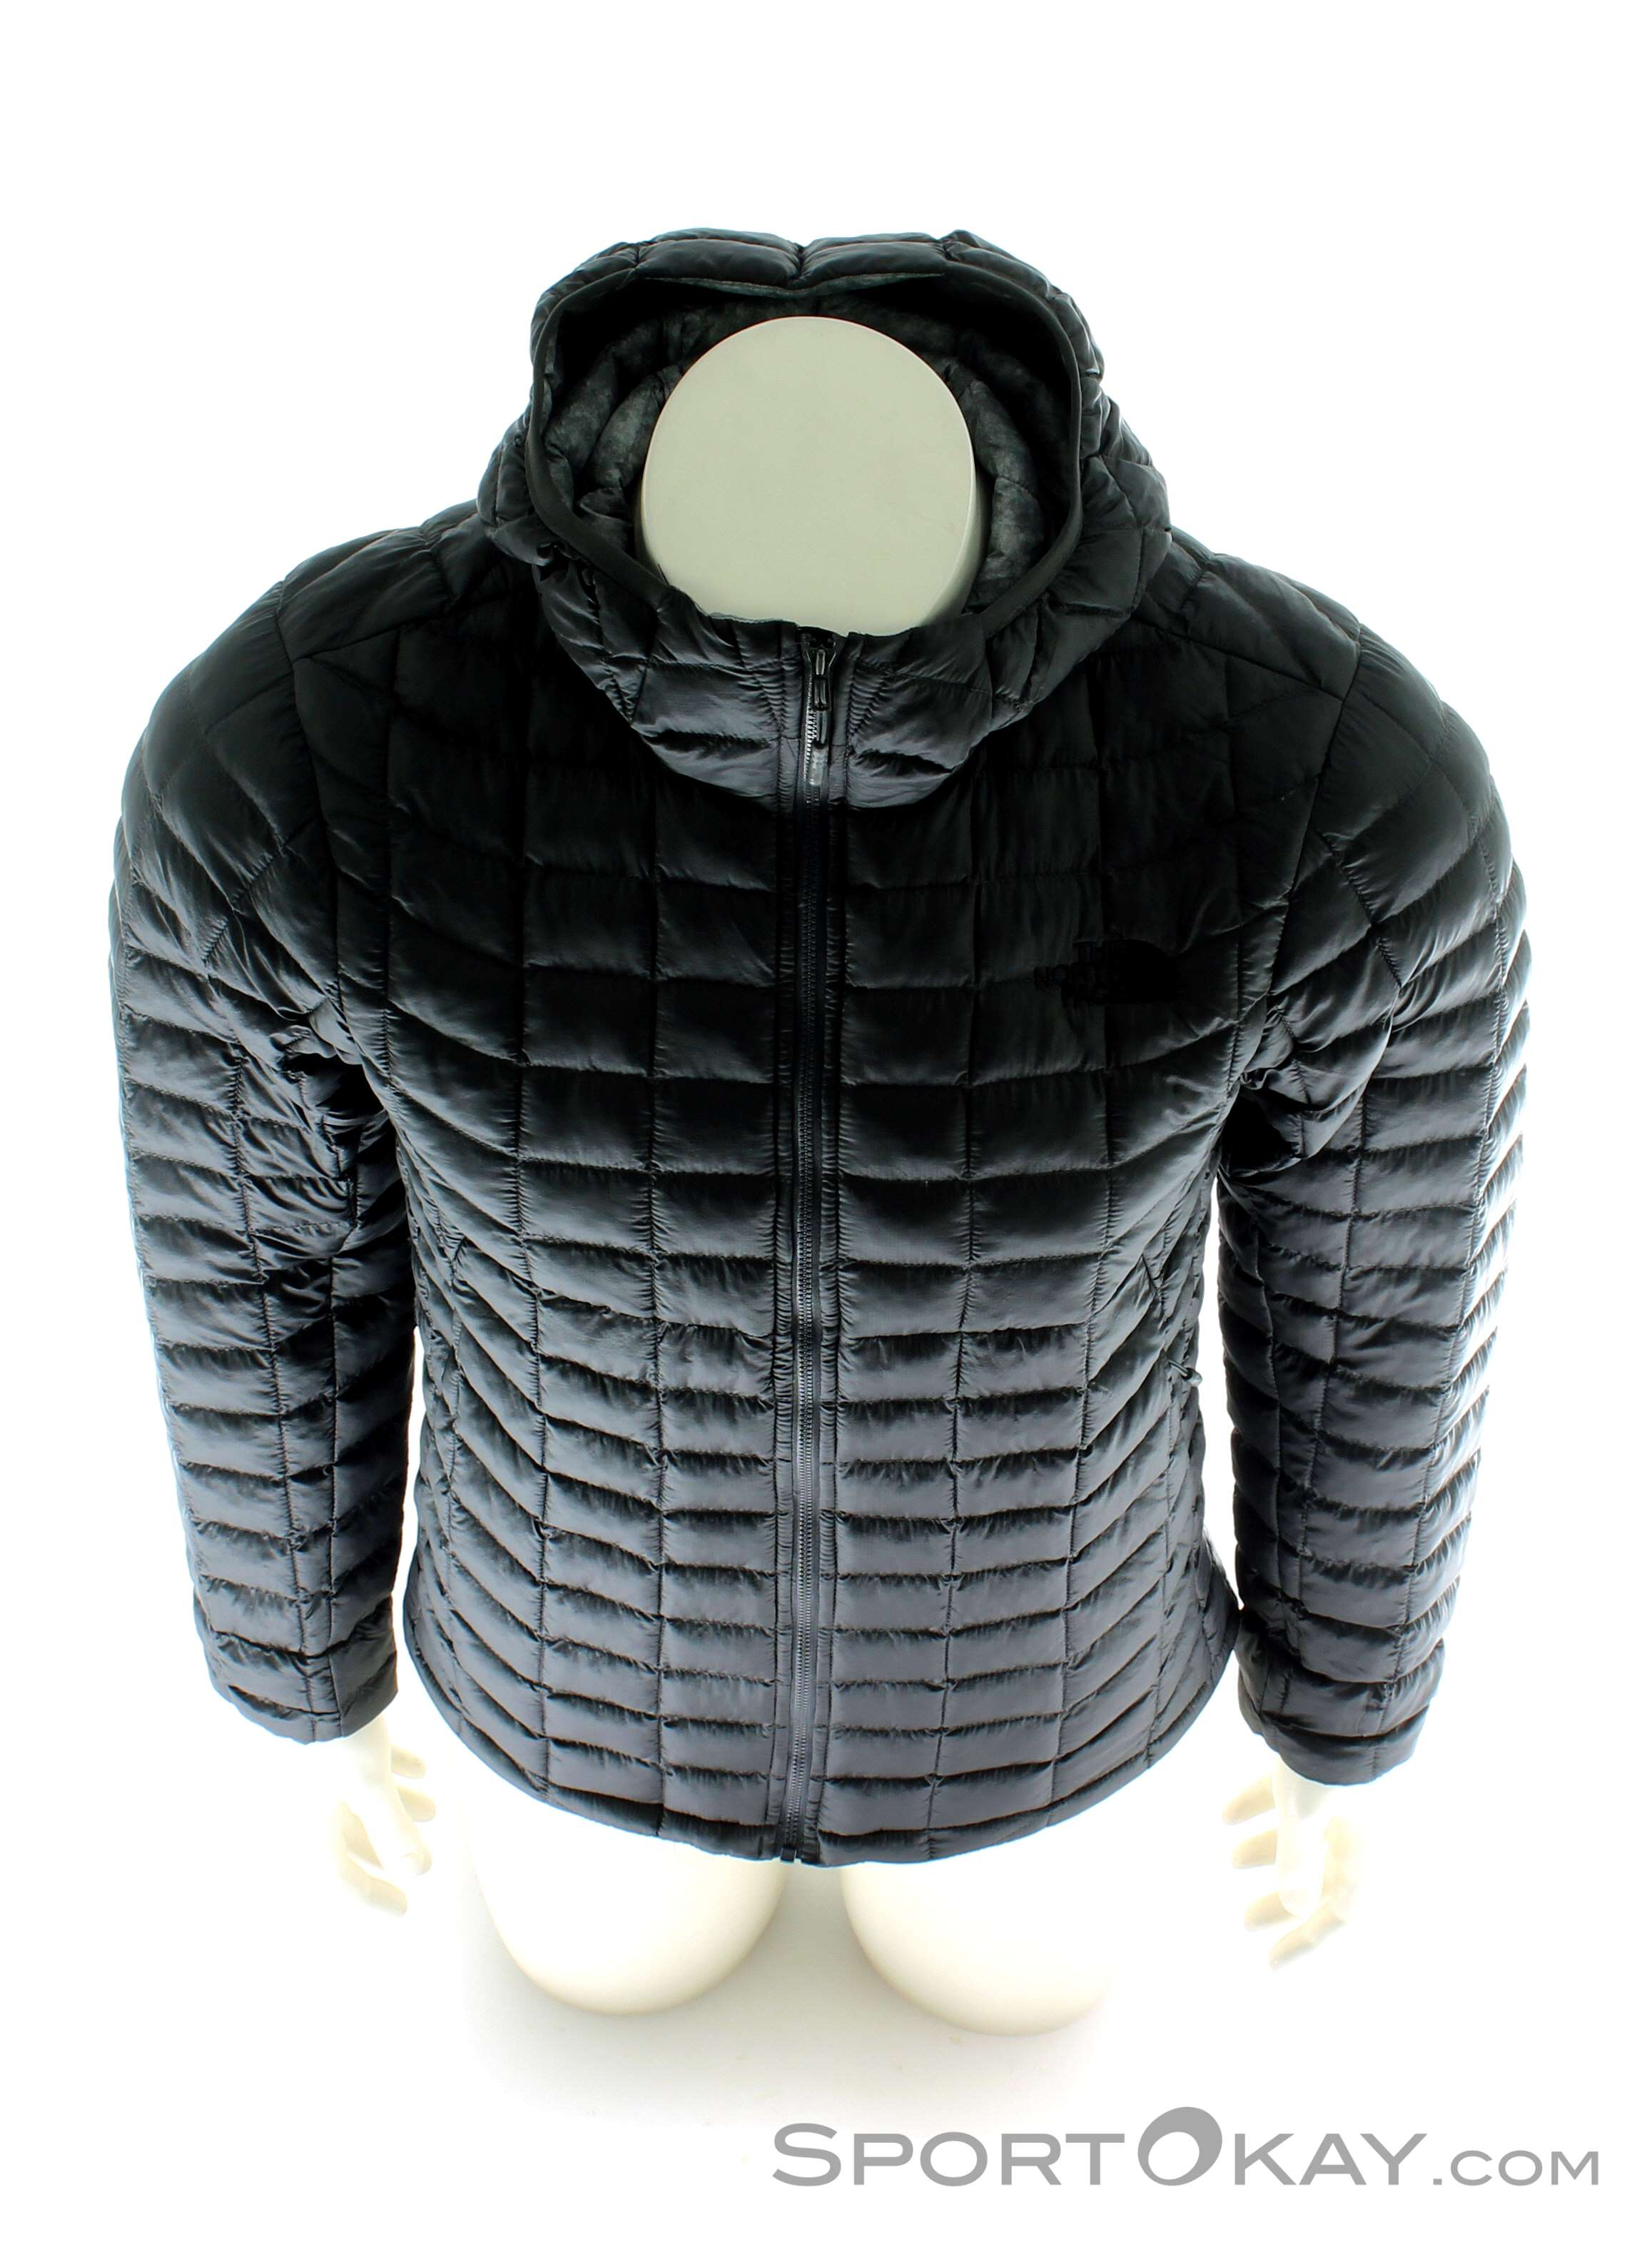 Outdoorjacke h&m